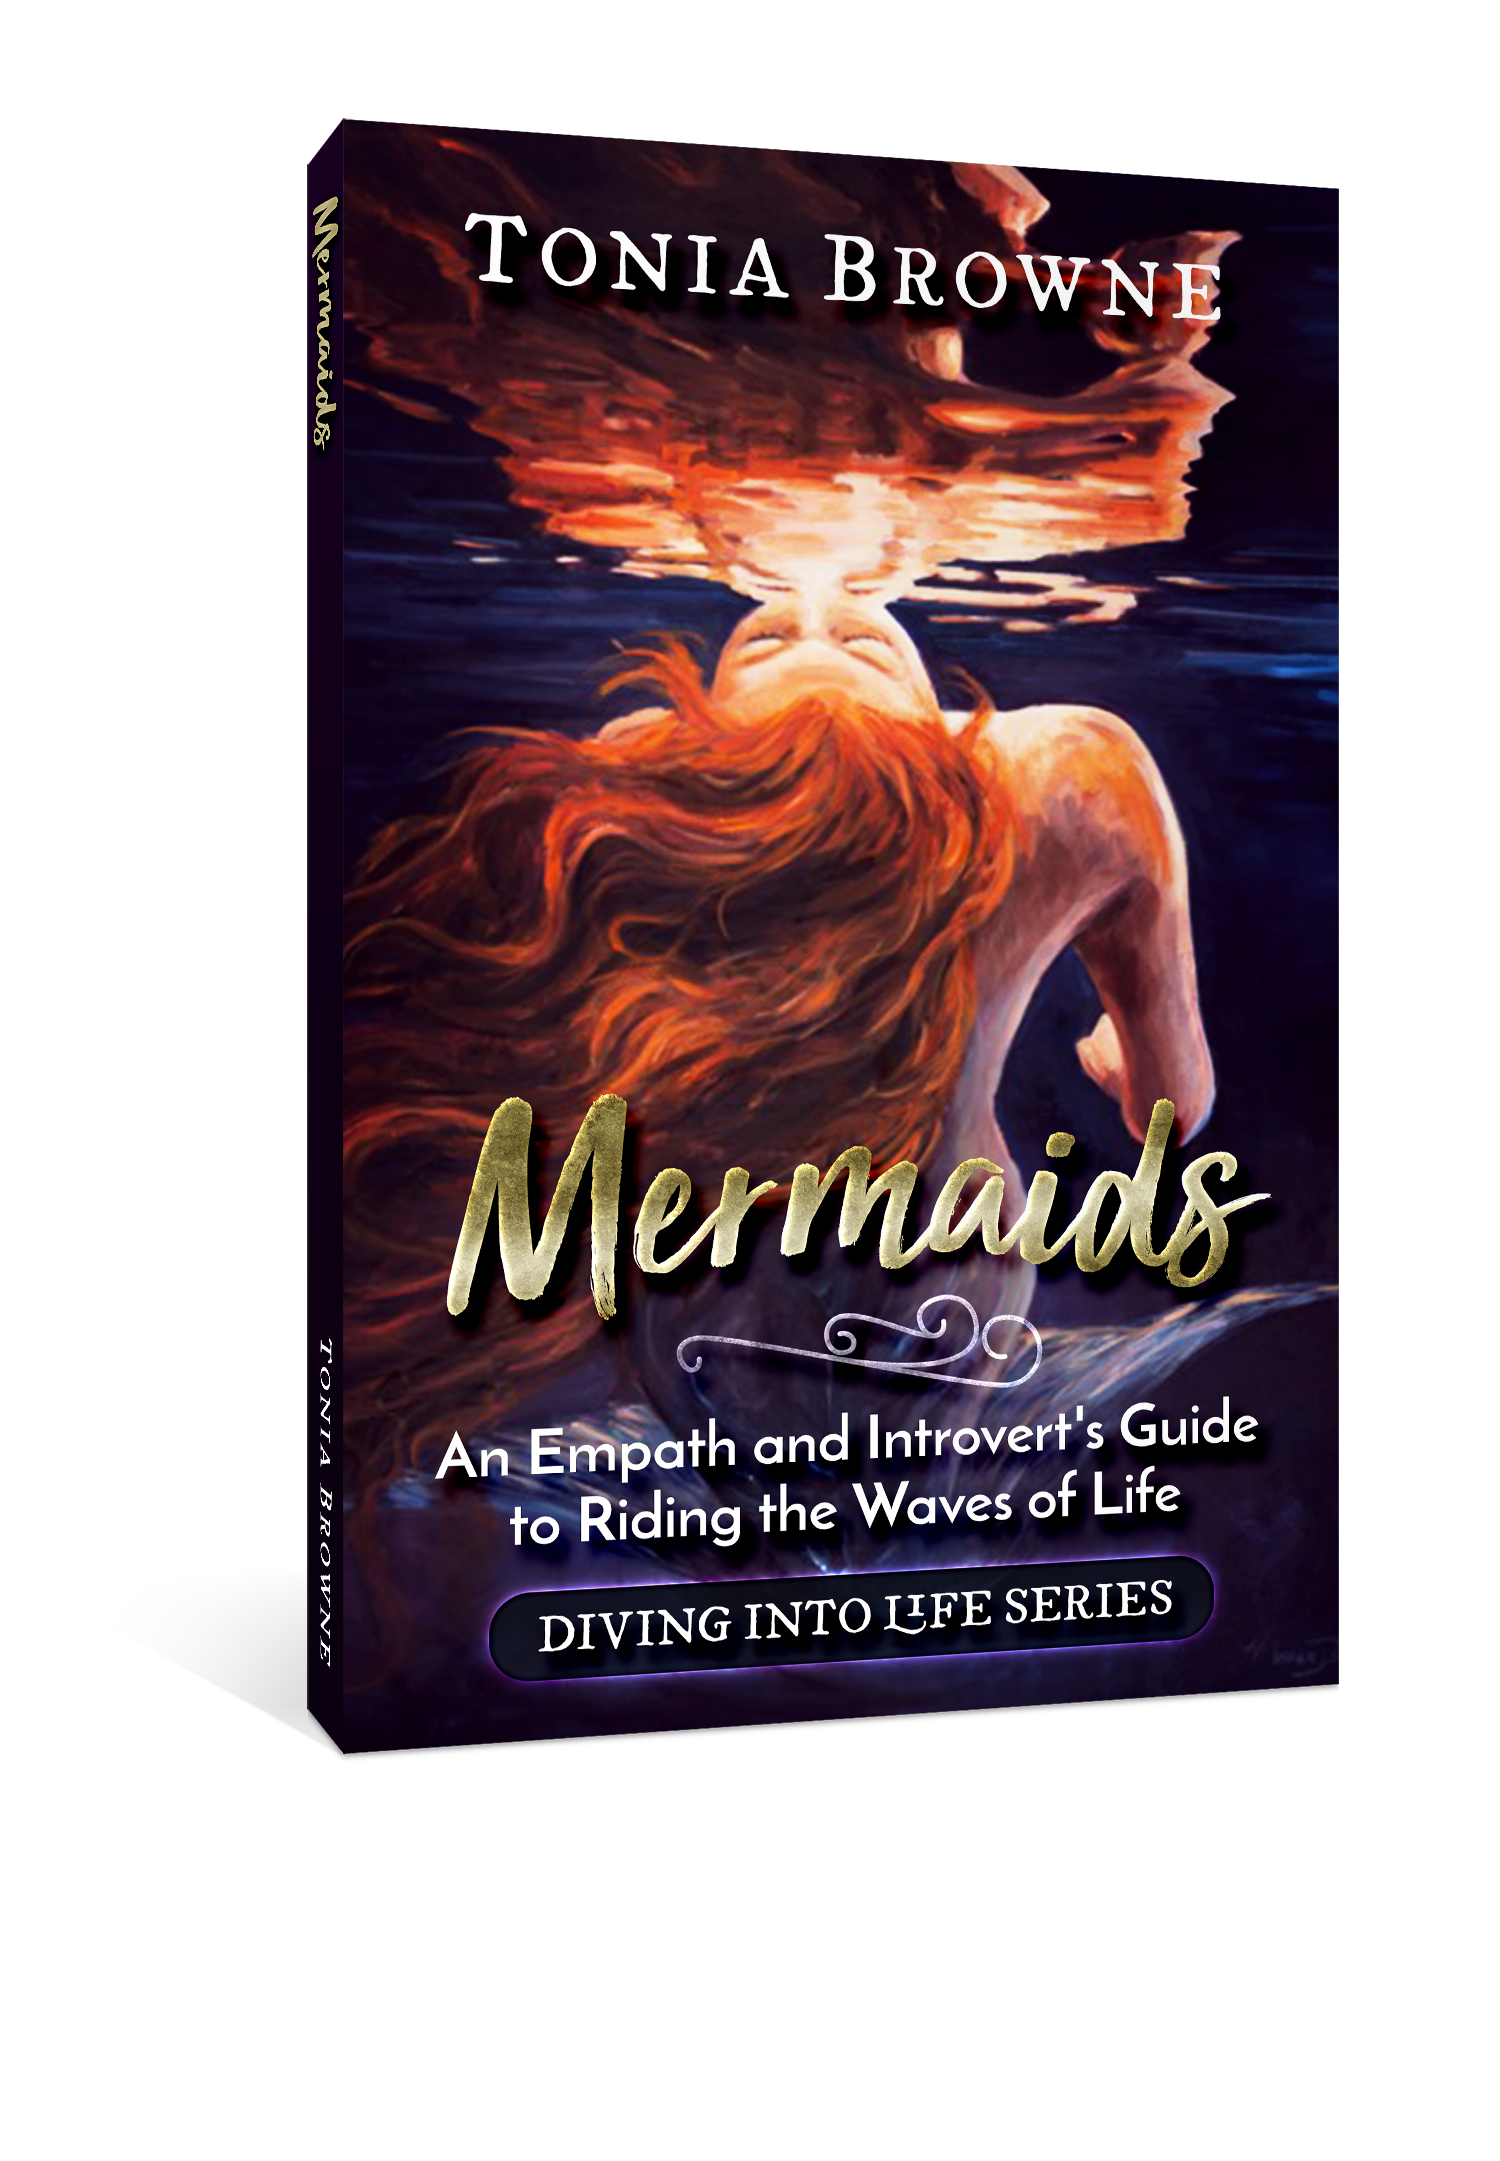 Revised 9.26 Mermaids-TB-v2-3D copy